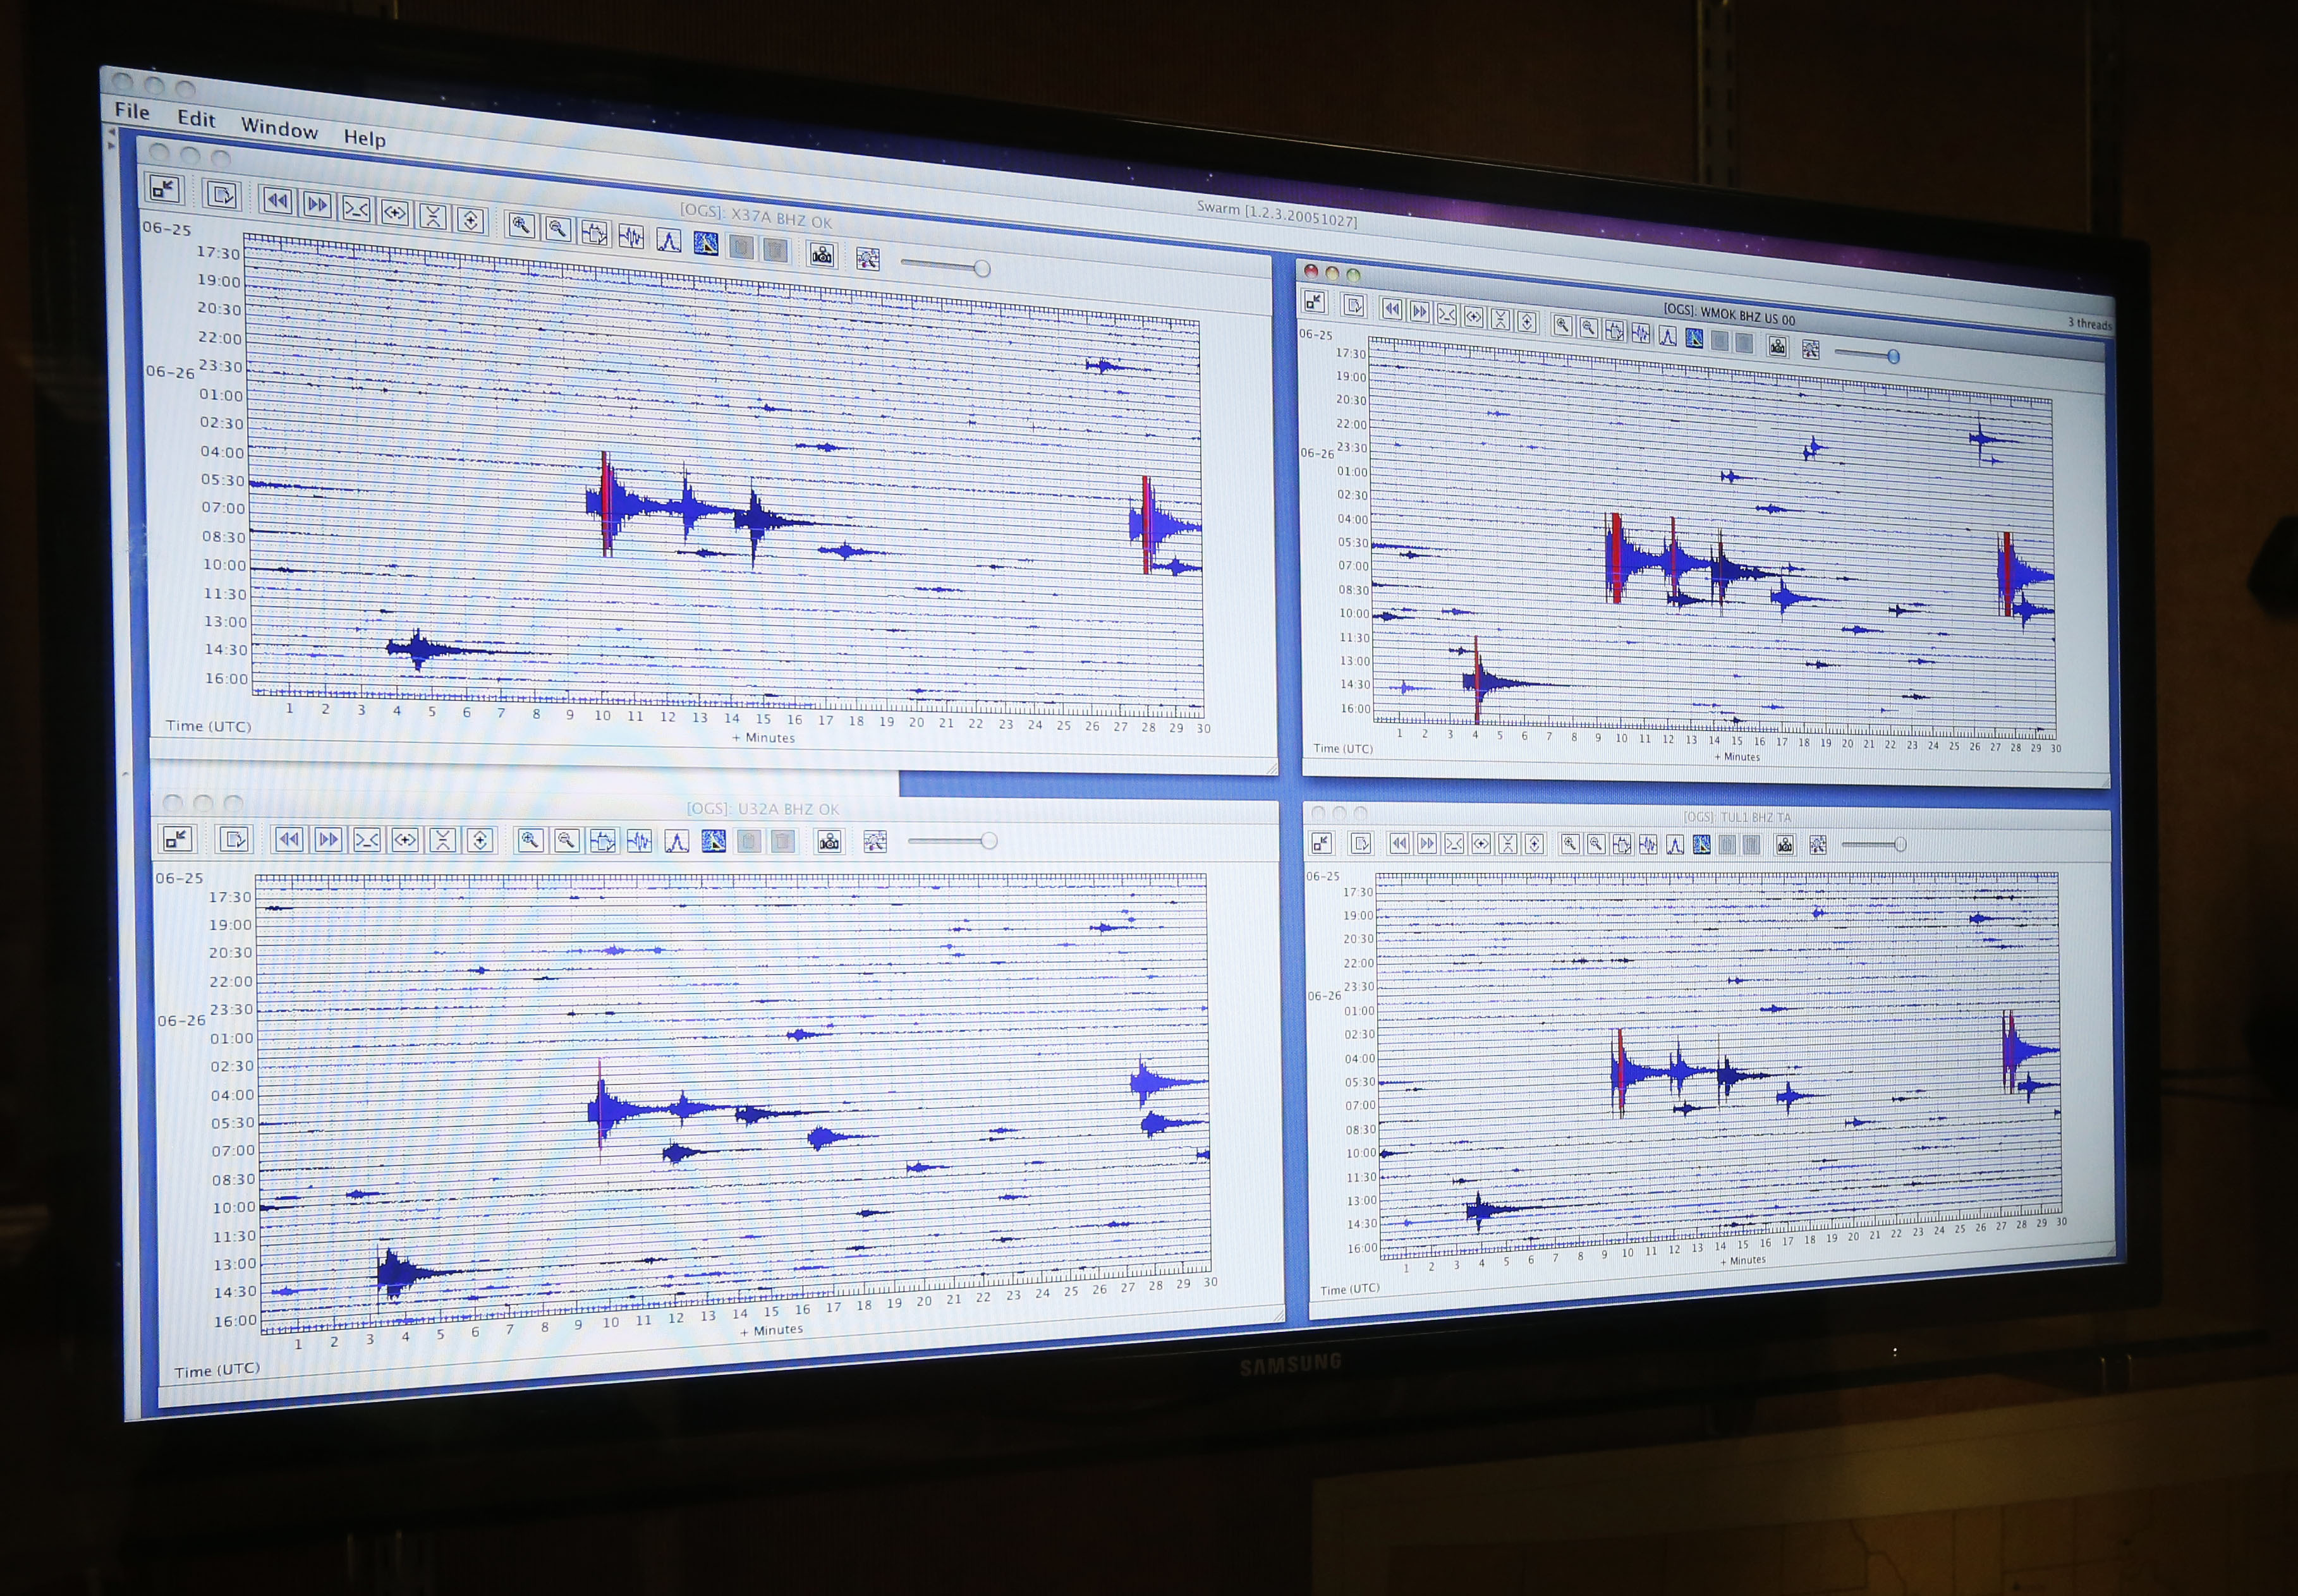 Computer screens displaying data of real-time monitoring of seismic activity throughout the state of Oklahoma are pictured at the Oklahoma Geological Survey at the University of Oklahoma in Norman, Okla., Thursday, June 26, 2014. Earthquakes that have shaken Oklahoma communities in recent months have damaged homes, alarmed residents and prompted lawmakers and regulators to investigate what's behind the temblors — and what can be done to stop them.